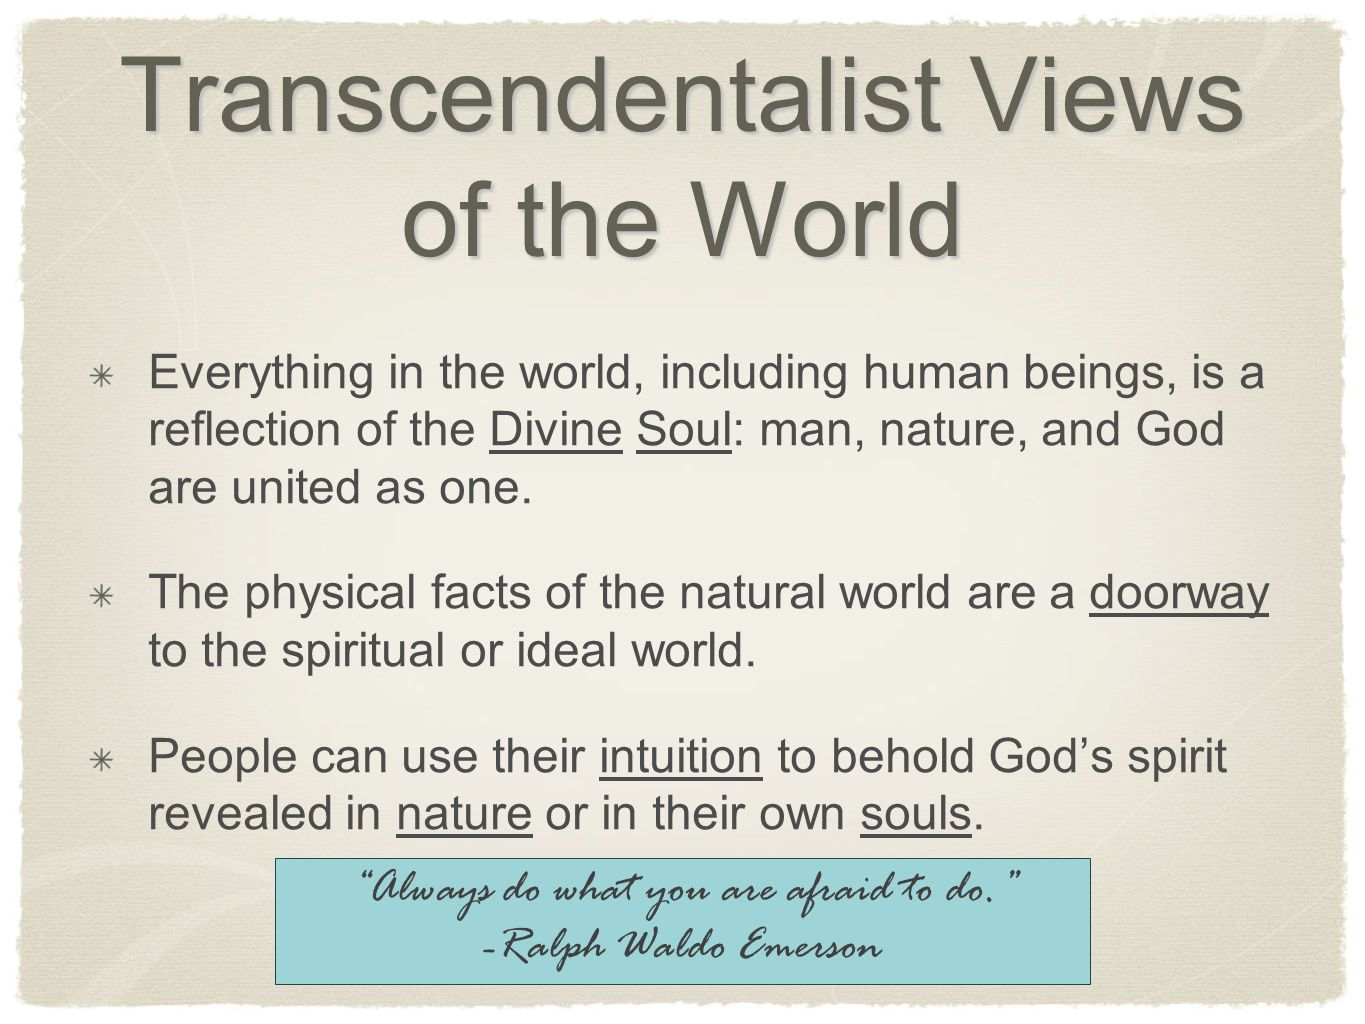 facts and the negative views of transcendentalism College prep english iii search this site welcome to american literature syllabus works in the dark romantic spirit were influenced by transcendentalism dark romanticism views it in a much more sinister light than does transcendentalism.